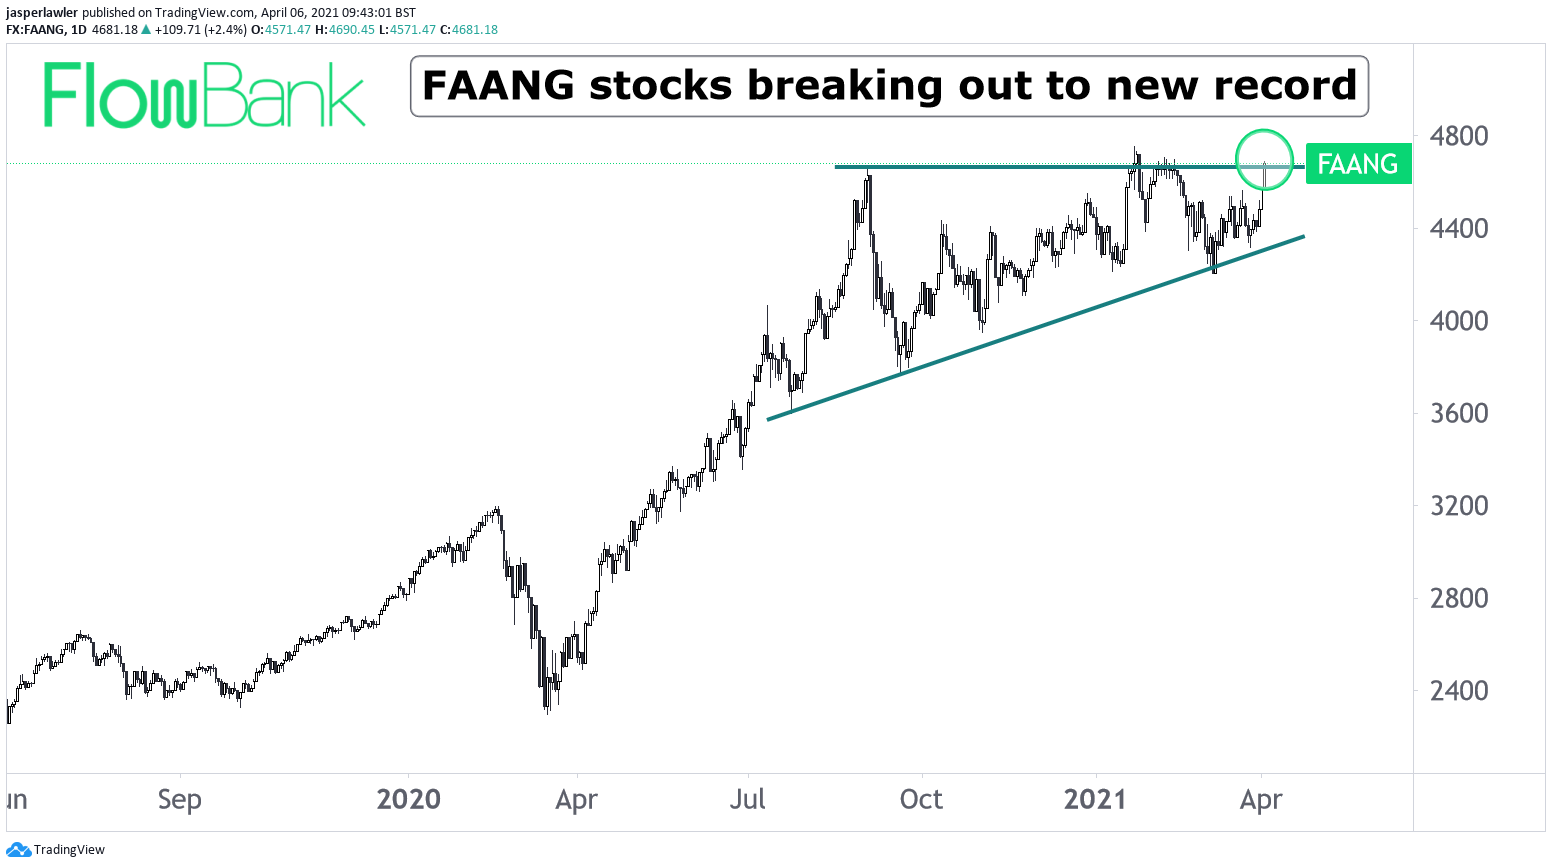 FAANG stocks breakout to new reocrd high